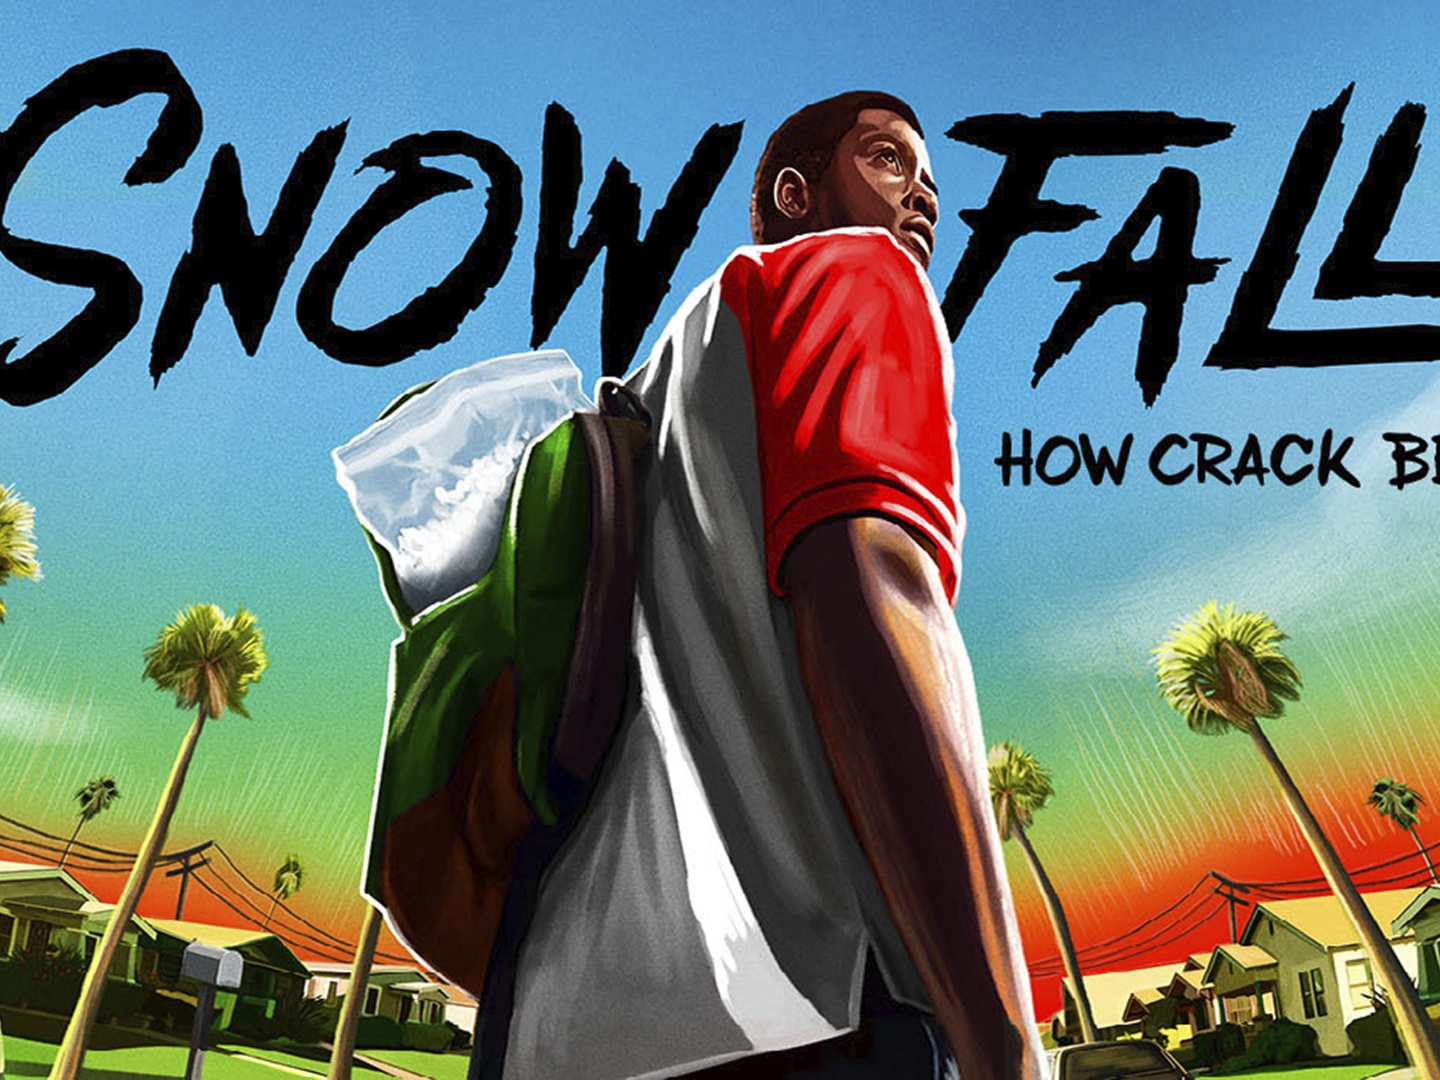 Image for Snowfall billboard (Franklin)